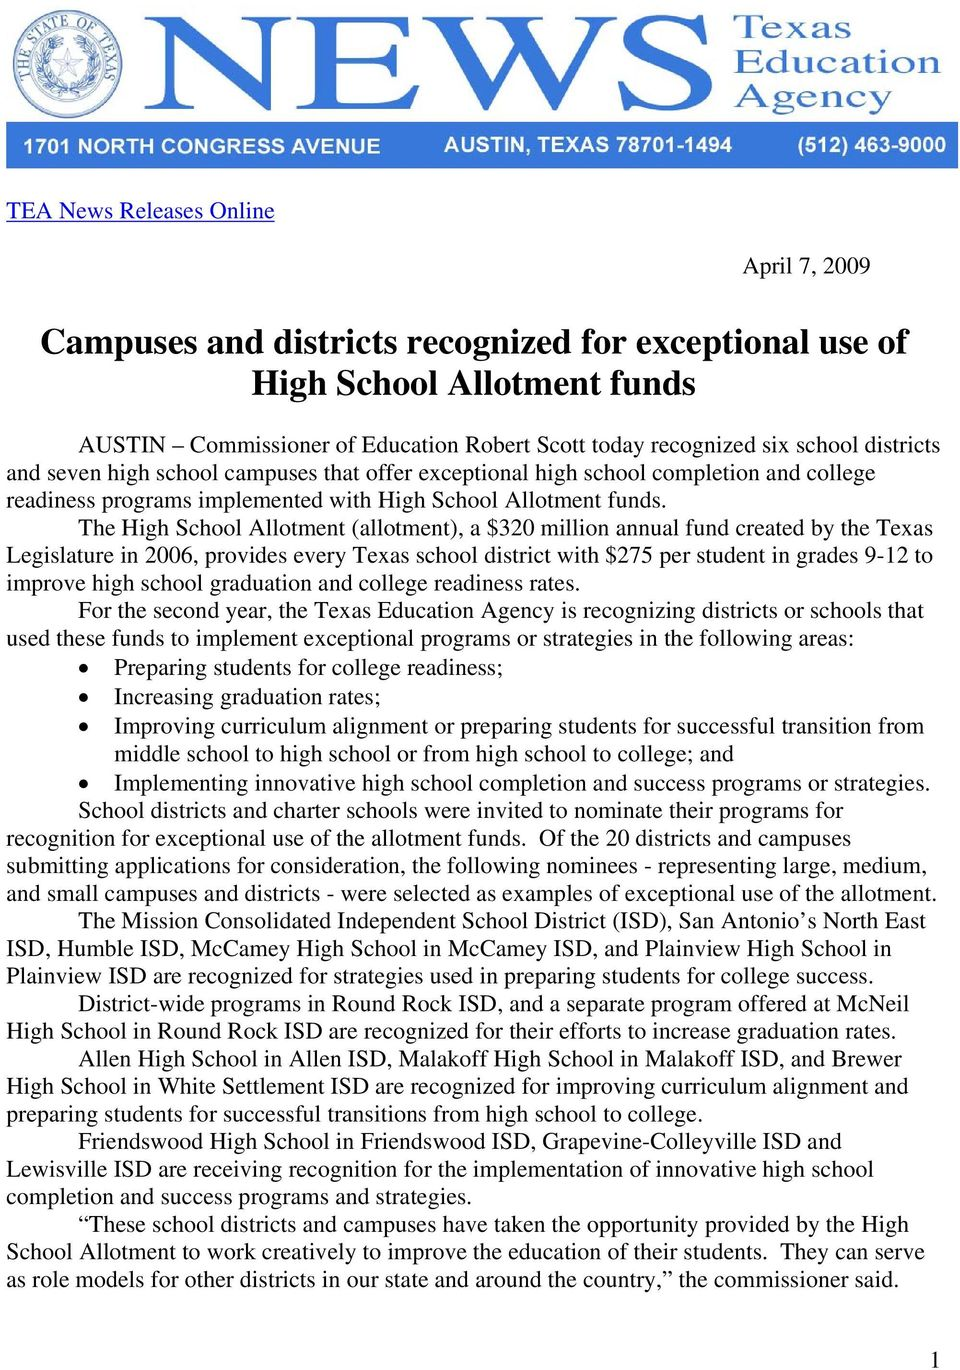 The High School Allotment (allotment), a $320 million annual fund created by the Texas Legislature in 2006, provides every Texas school district with $275 per student in grades 9-12 to improve high